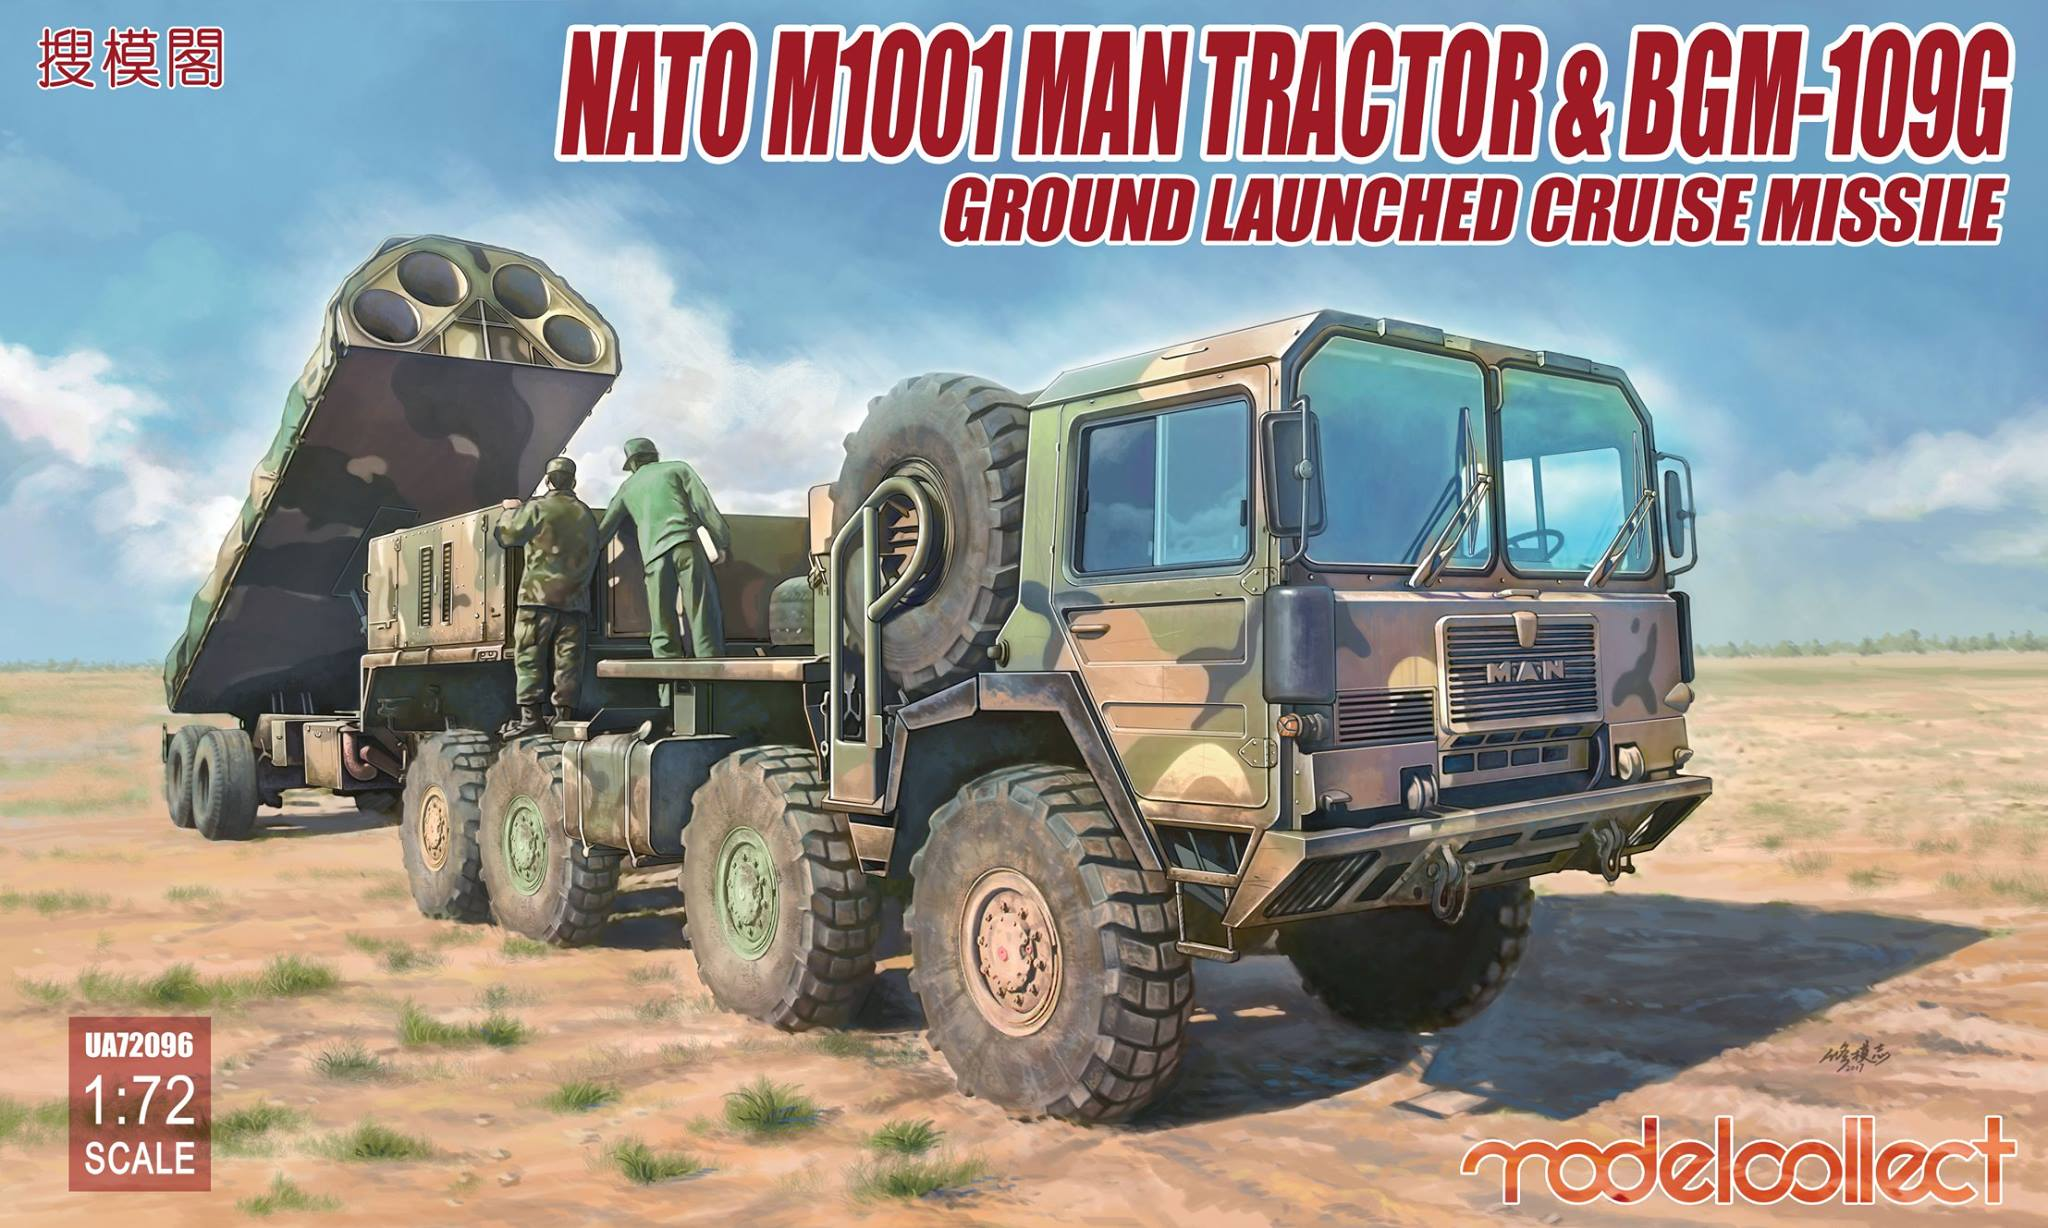 NATO M1001 MAN Tractor & BGM-109G Ground Launched Cruise Missile